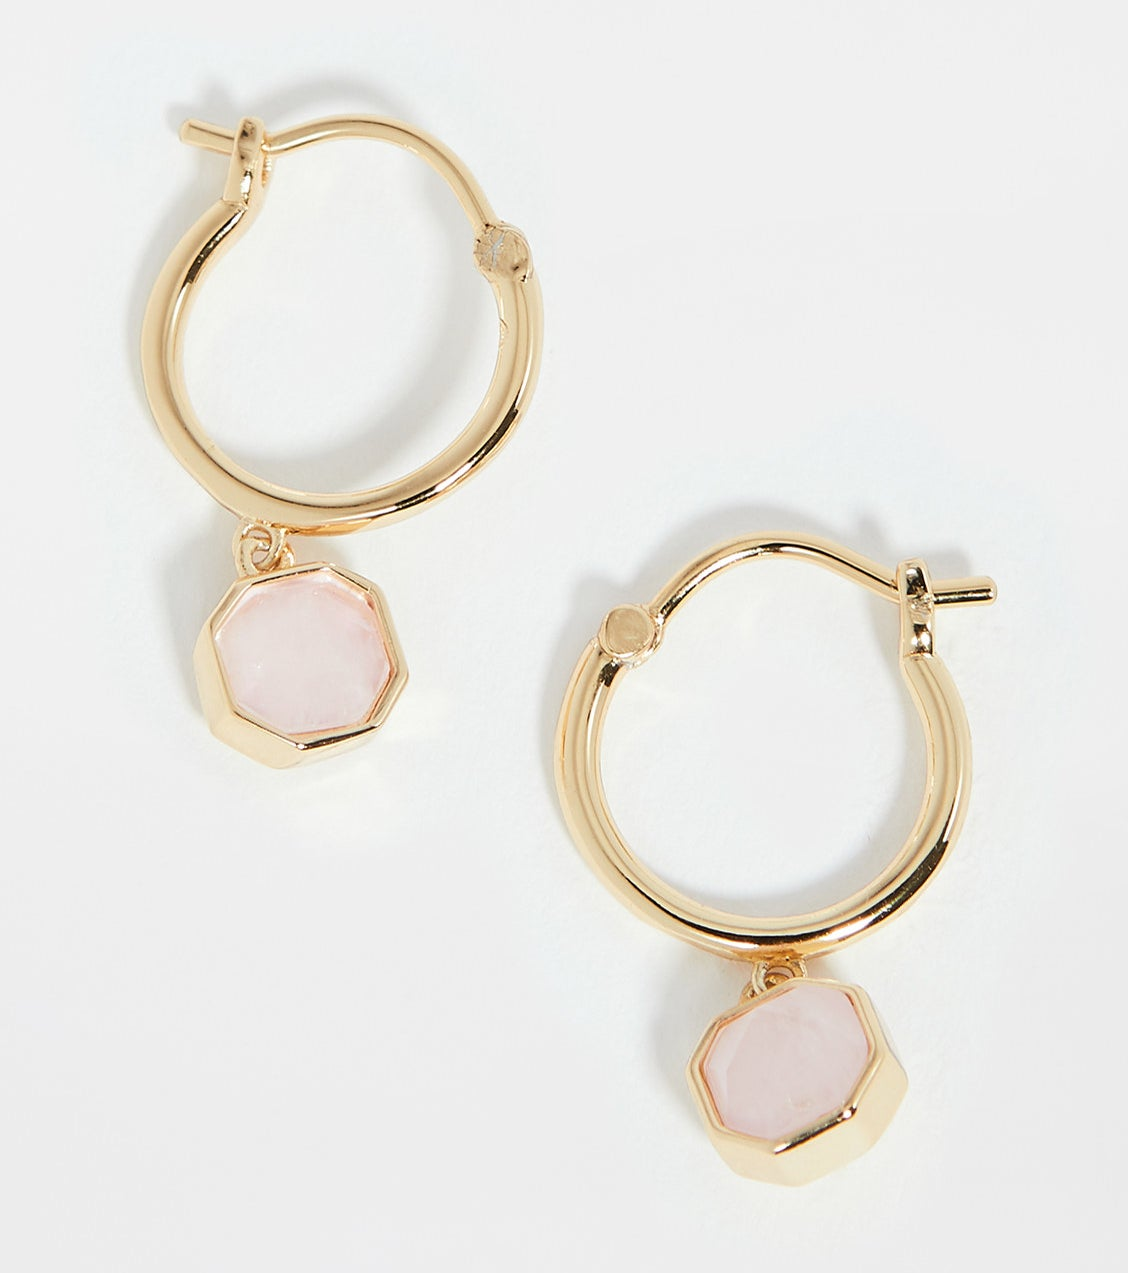 hold hoop huggie earrings with rose quartz stones hanging from he hoops, encircled with gold